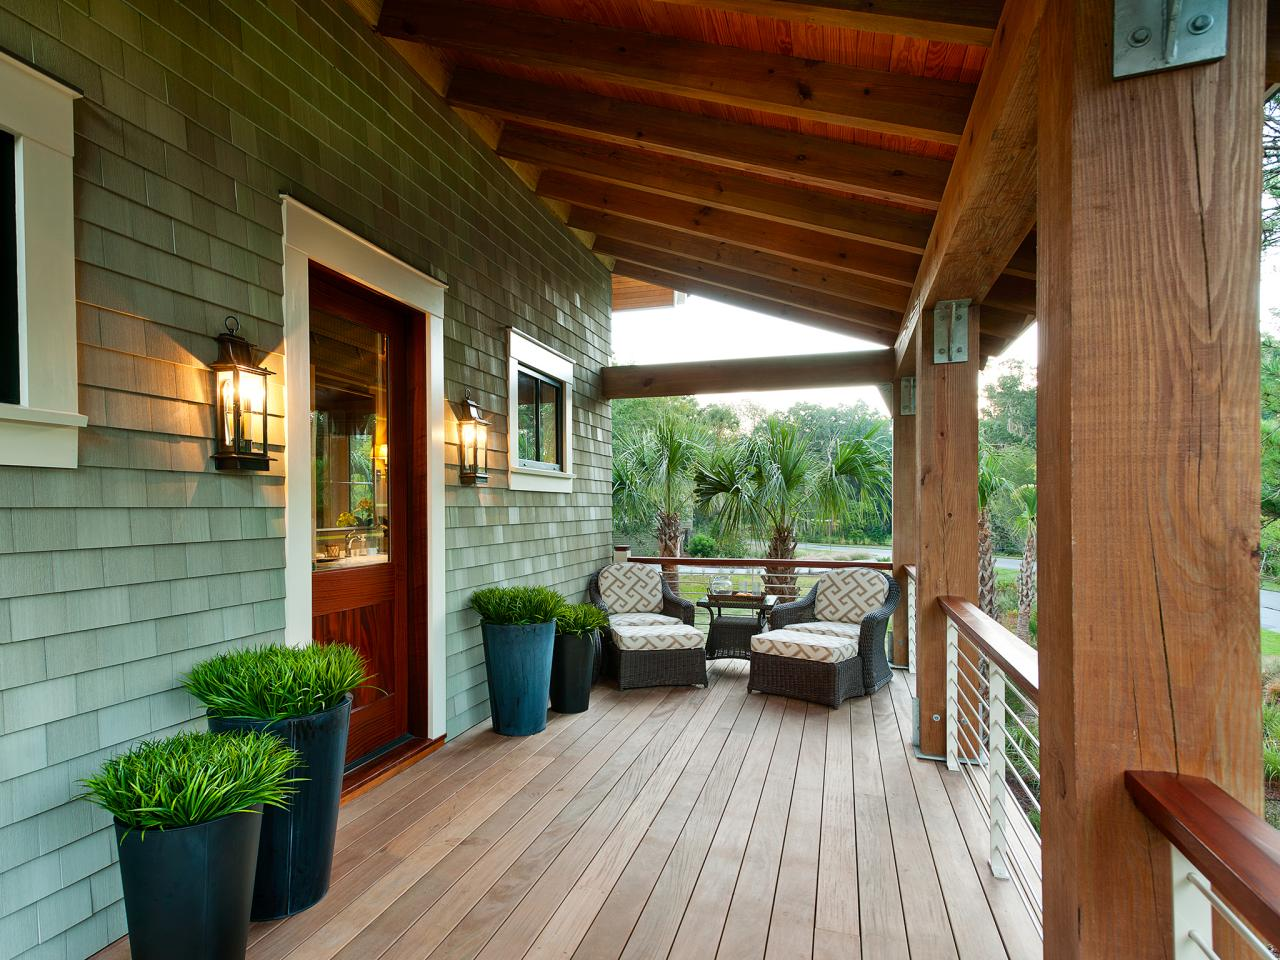 Country Porch Image